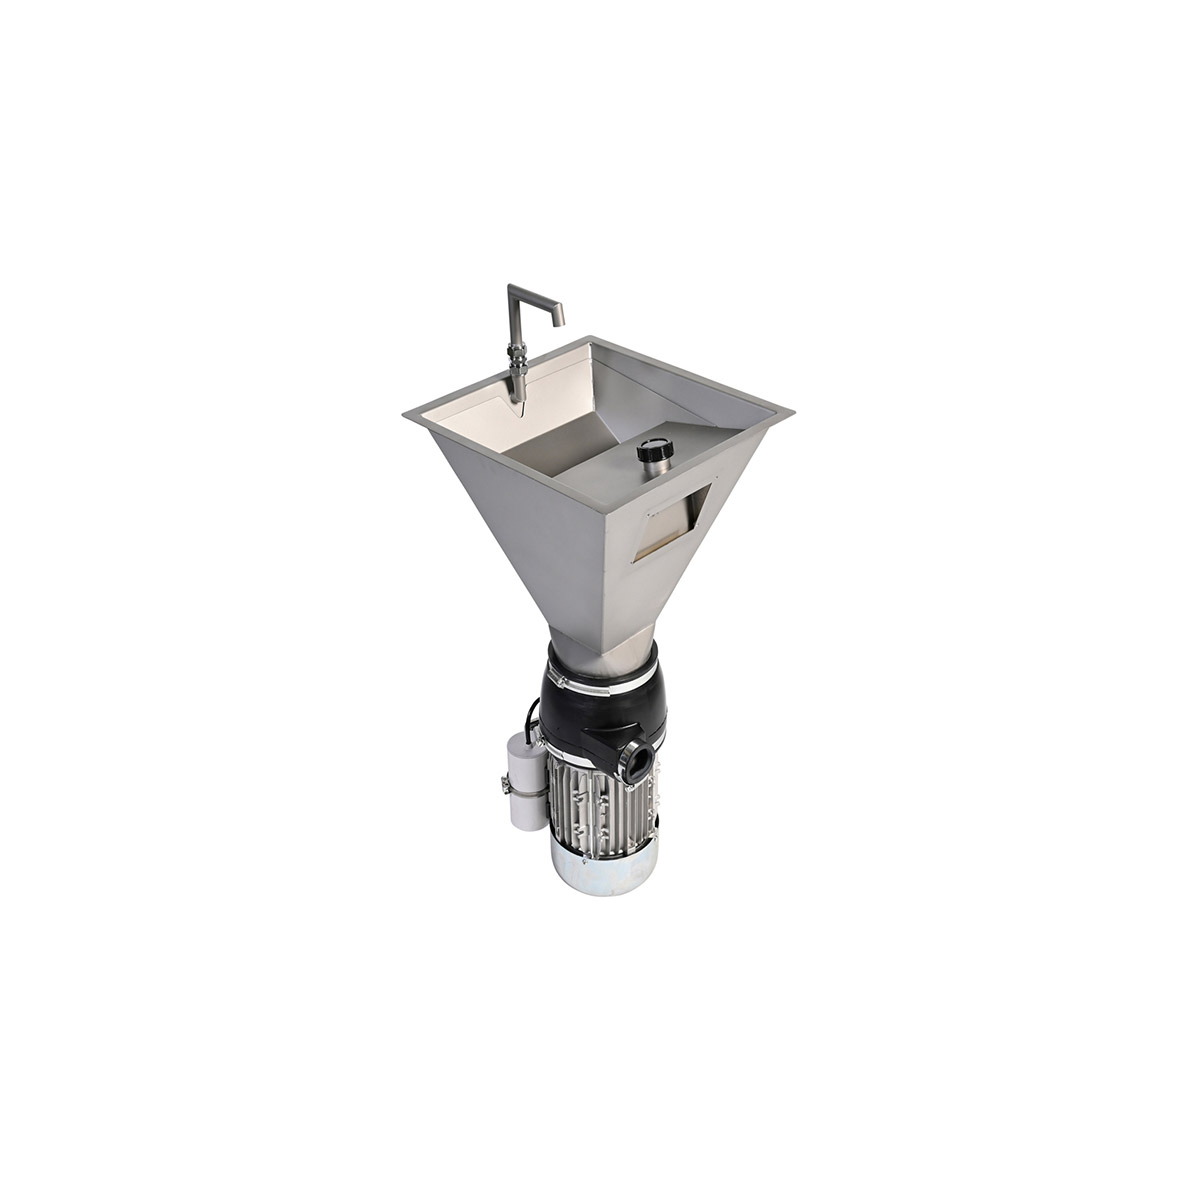 F52/510 - IMC Vulture 525 In-tabling Food Waste Disposer - 1 Phase [air break] - W 330 mm - 0.5 kW